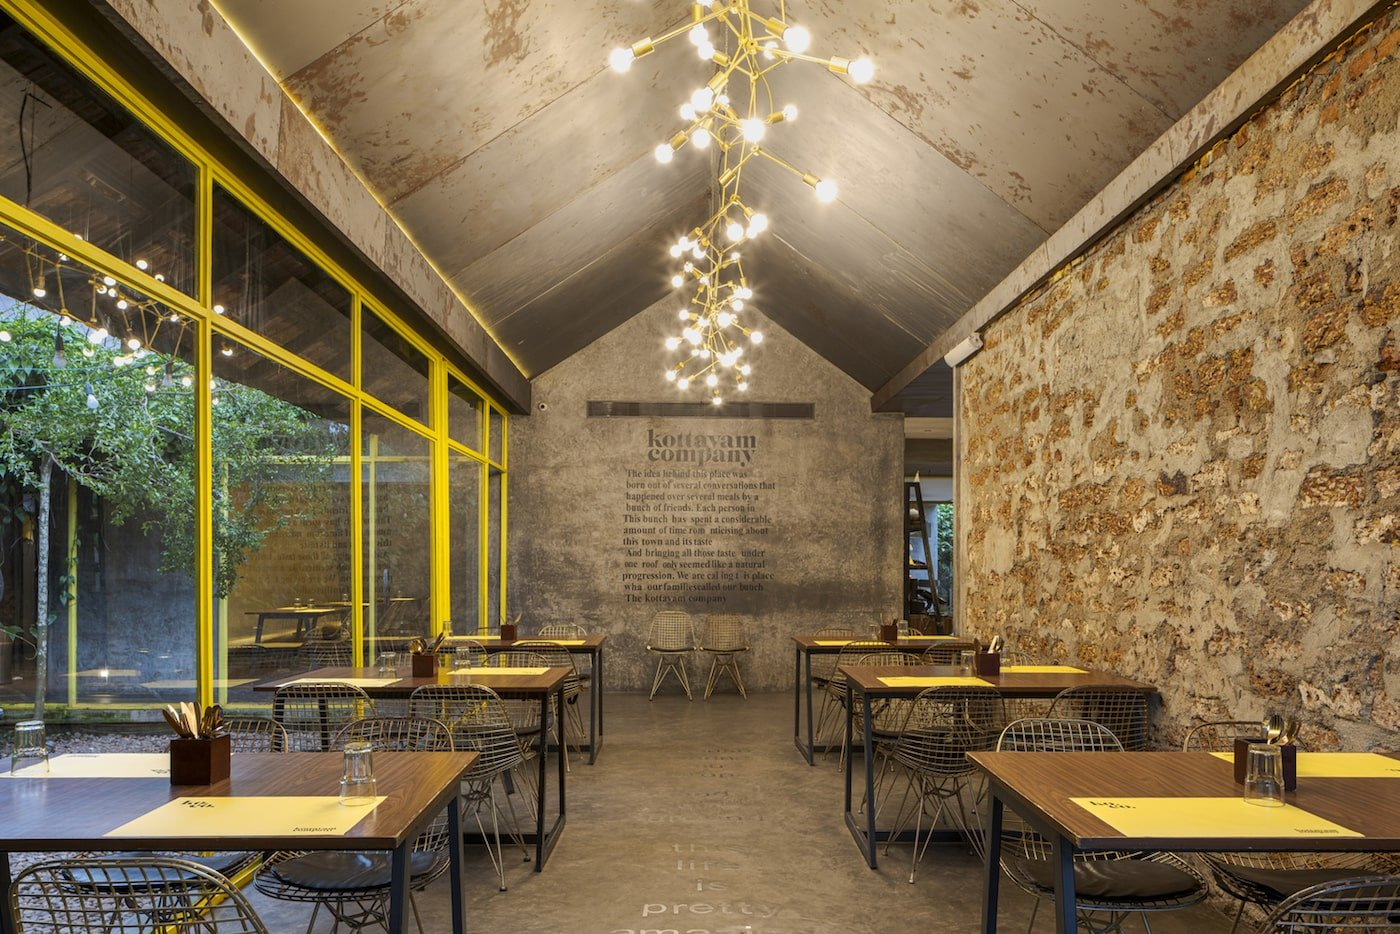 Restaurant interior salvaged bricks recycled metal sheets on ceiling